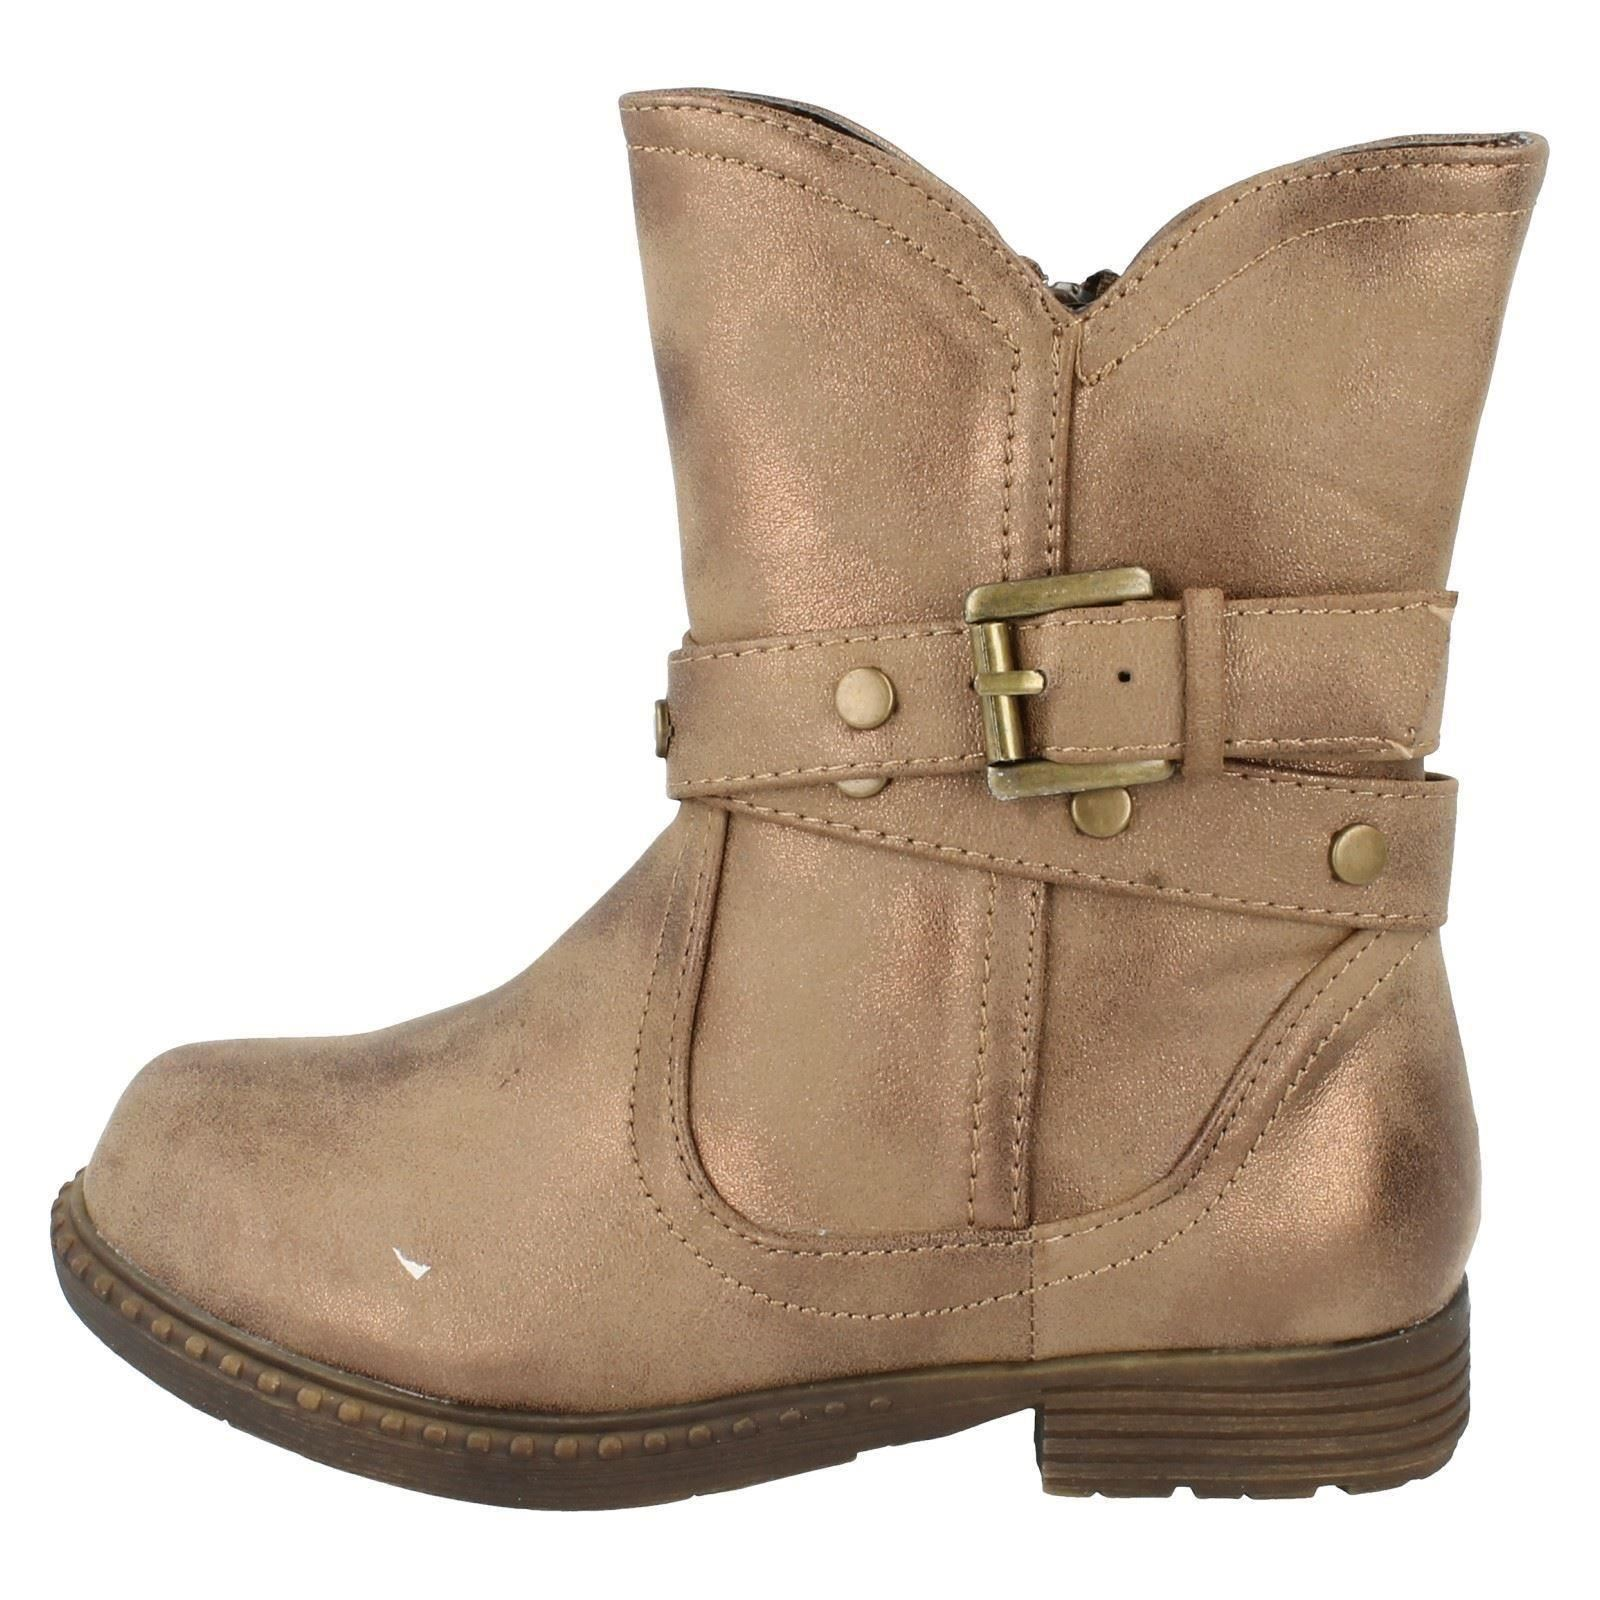 Girls Spot On Boots With Studed Detail Style - H4103